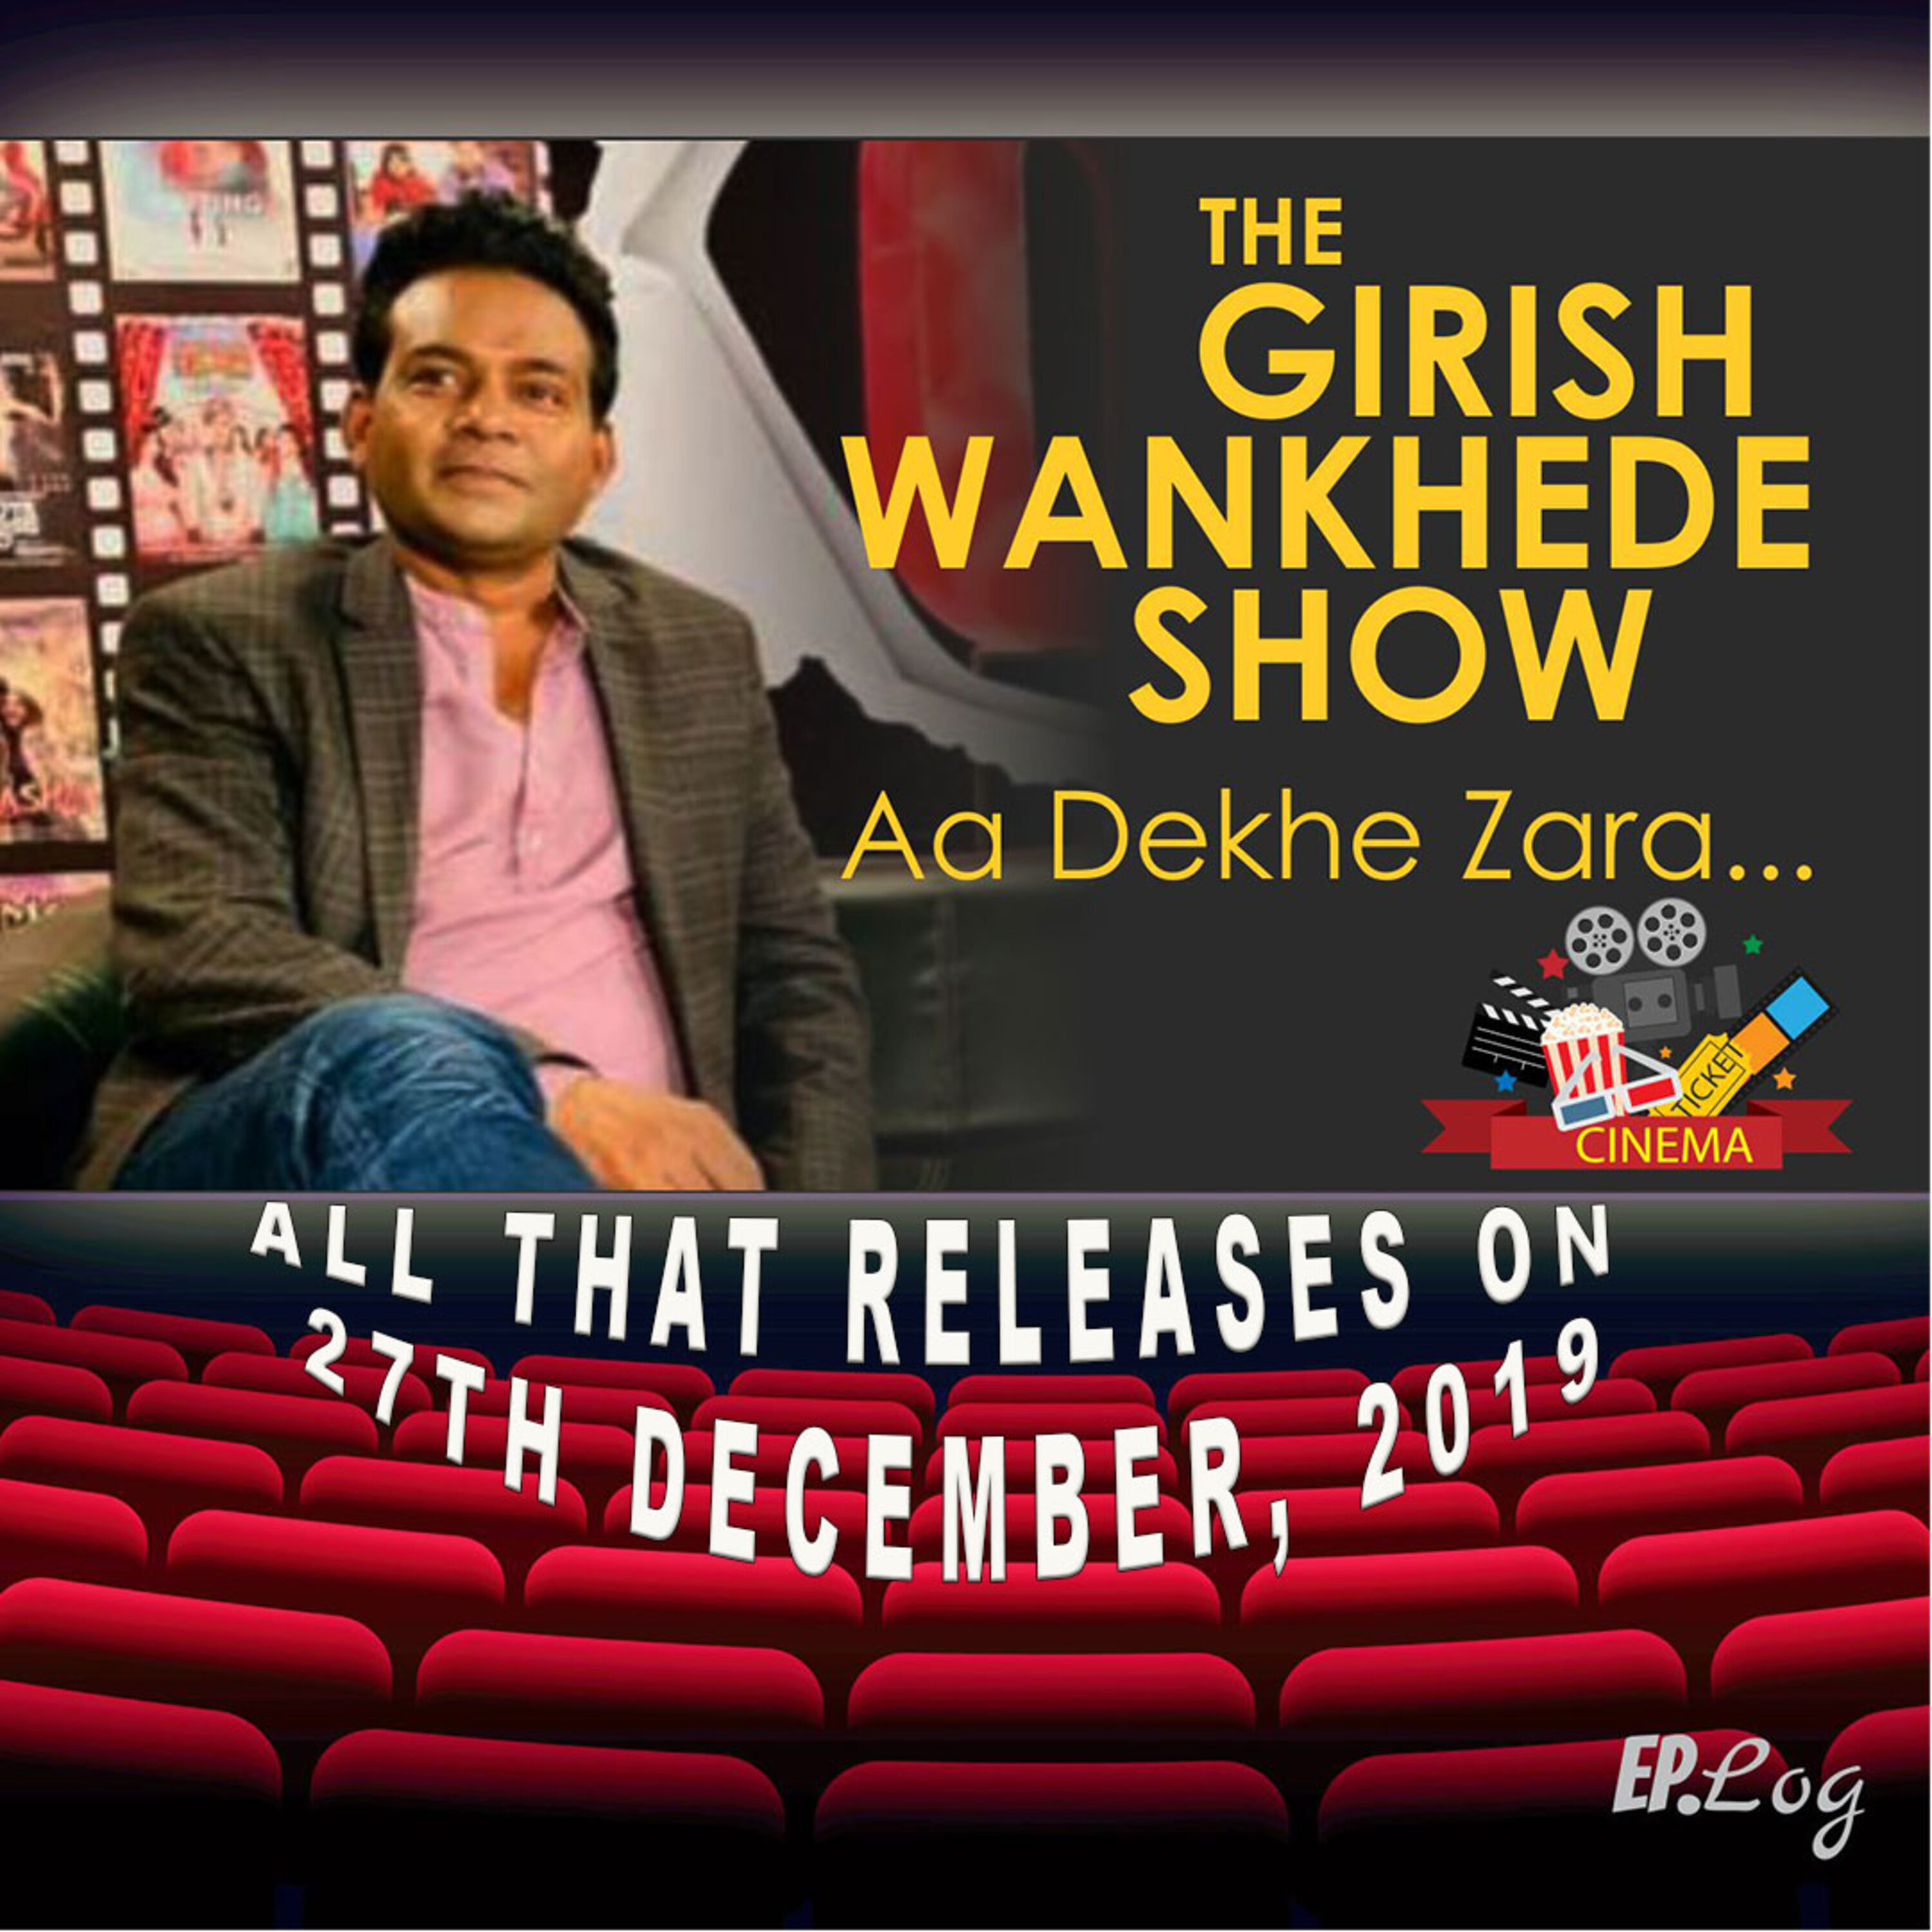 All That Releases on 27th December 2019 & Analysis